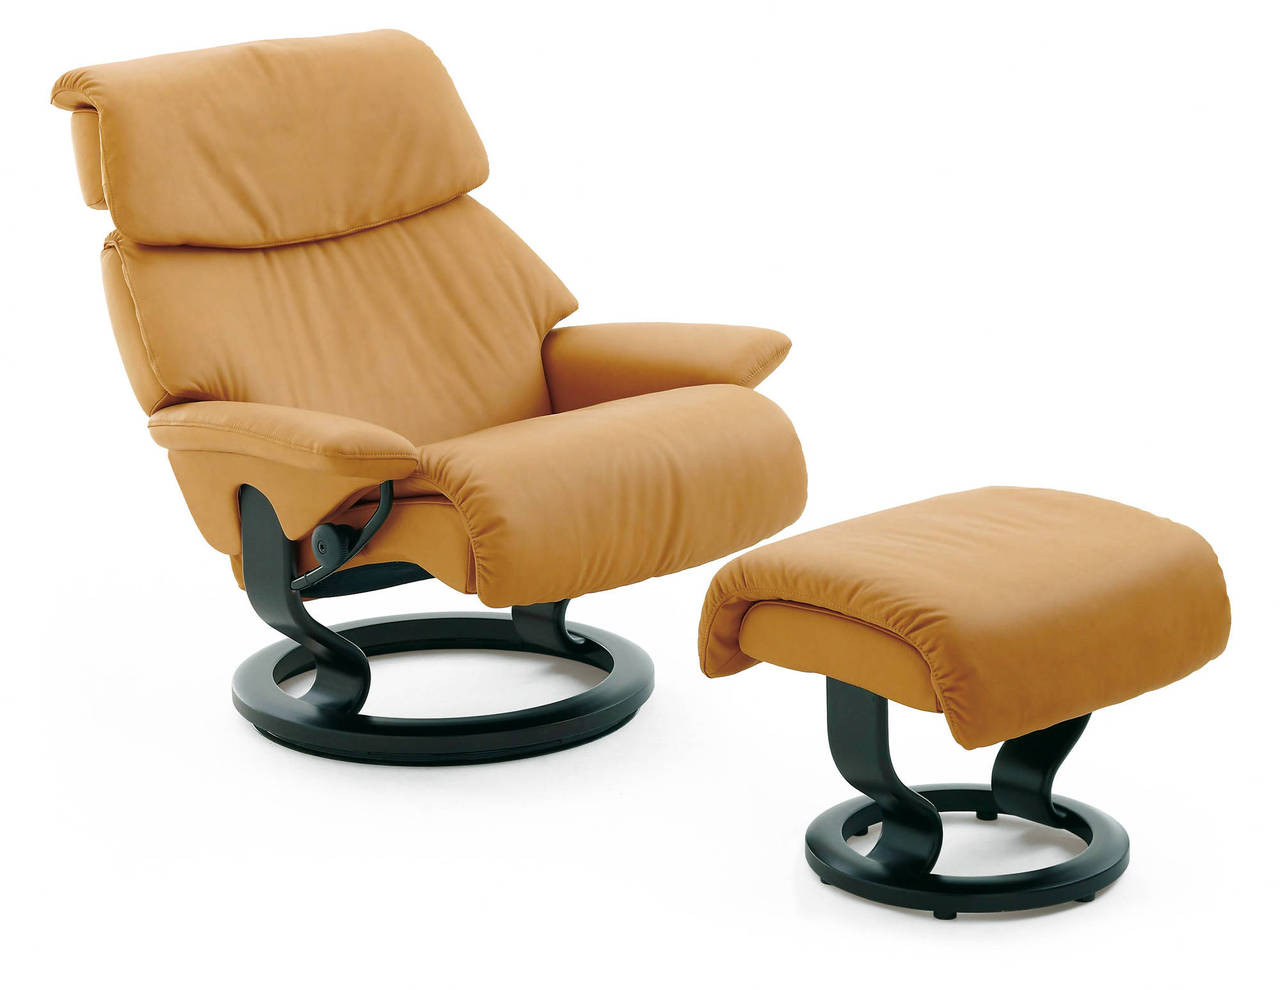 Stressless-world.com Stressless Spirit Recliner With Ottoman Pain Free Delivery